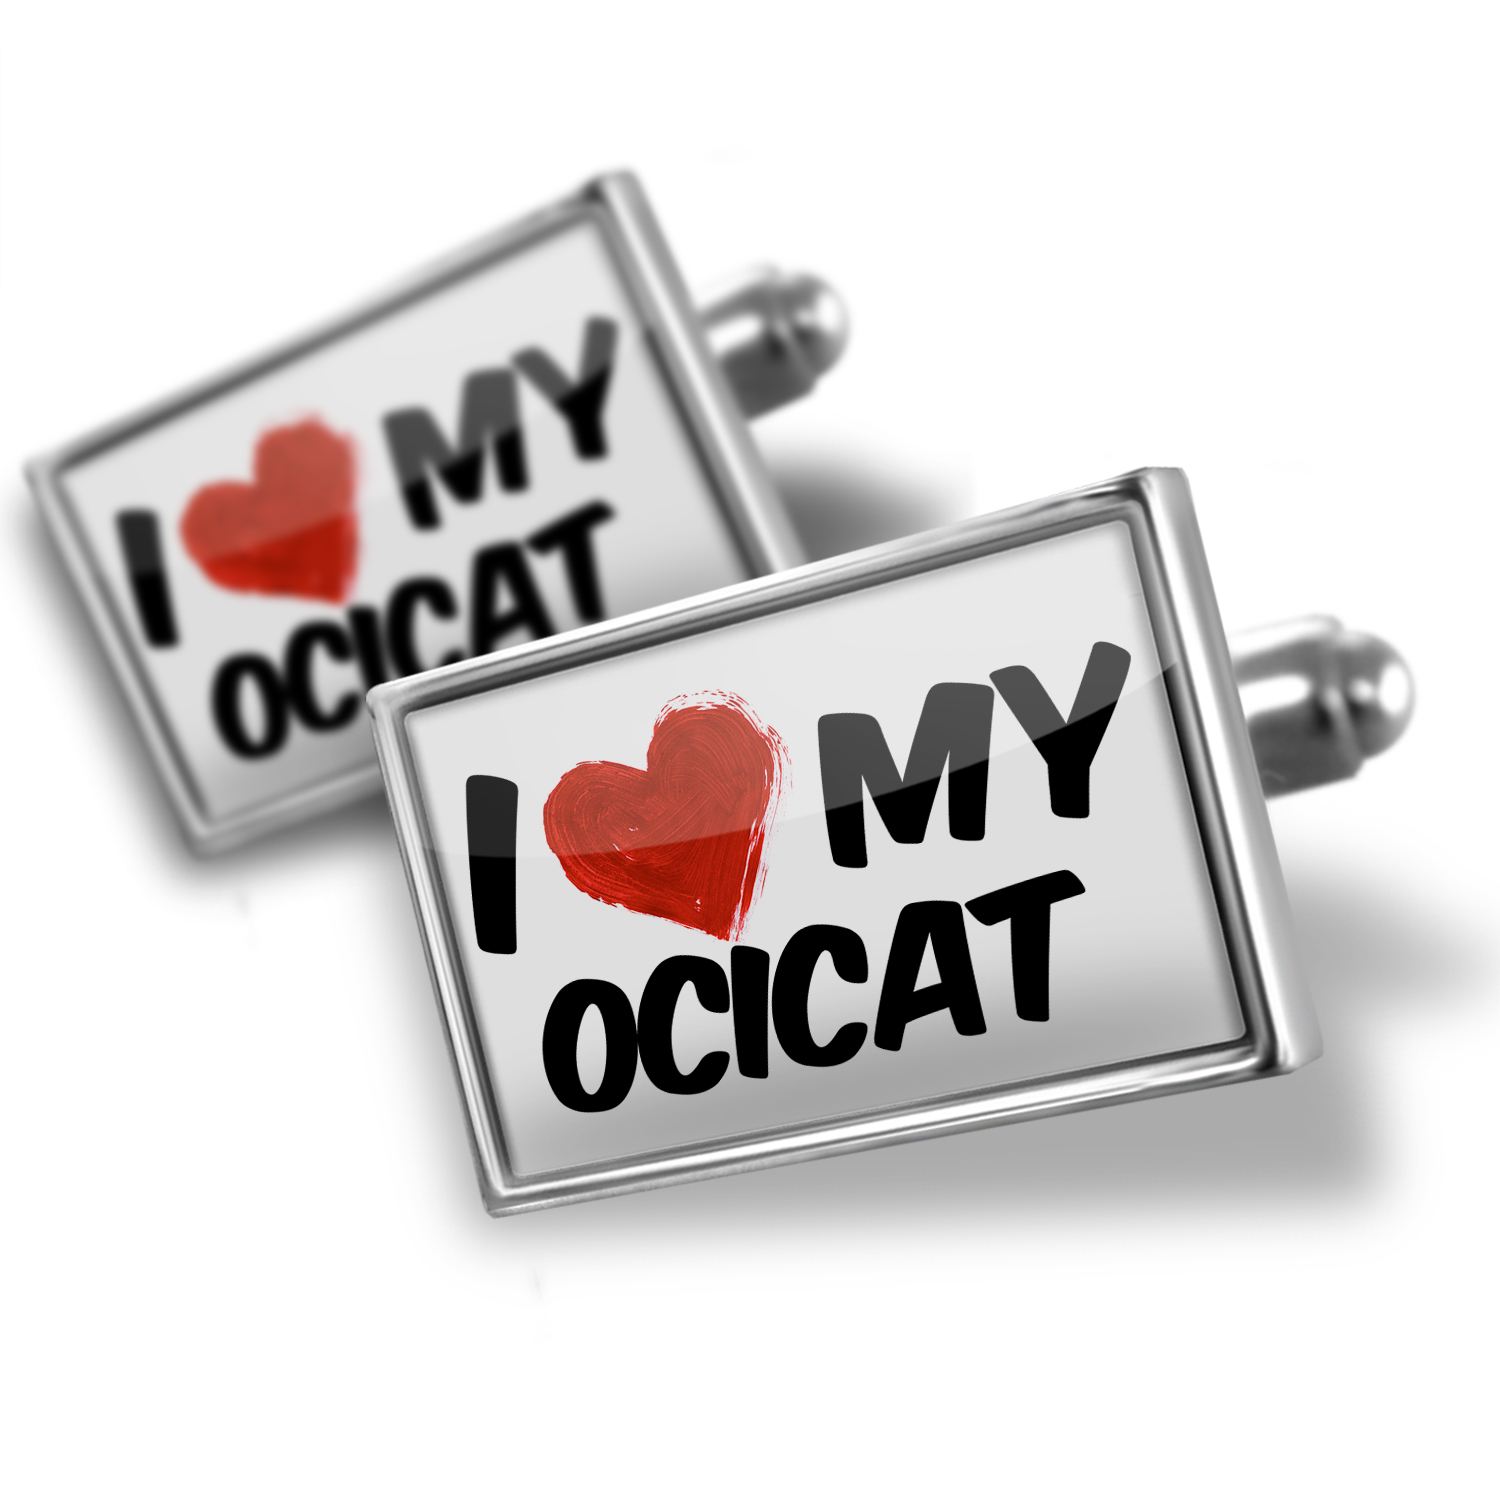 Cufflinks I Love my OciCat from United States - NEONBLOND